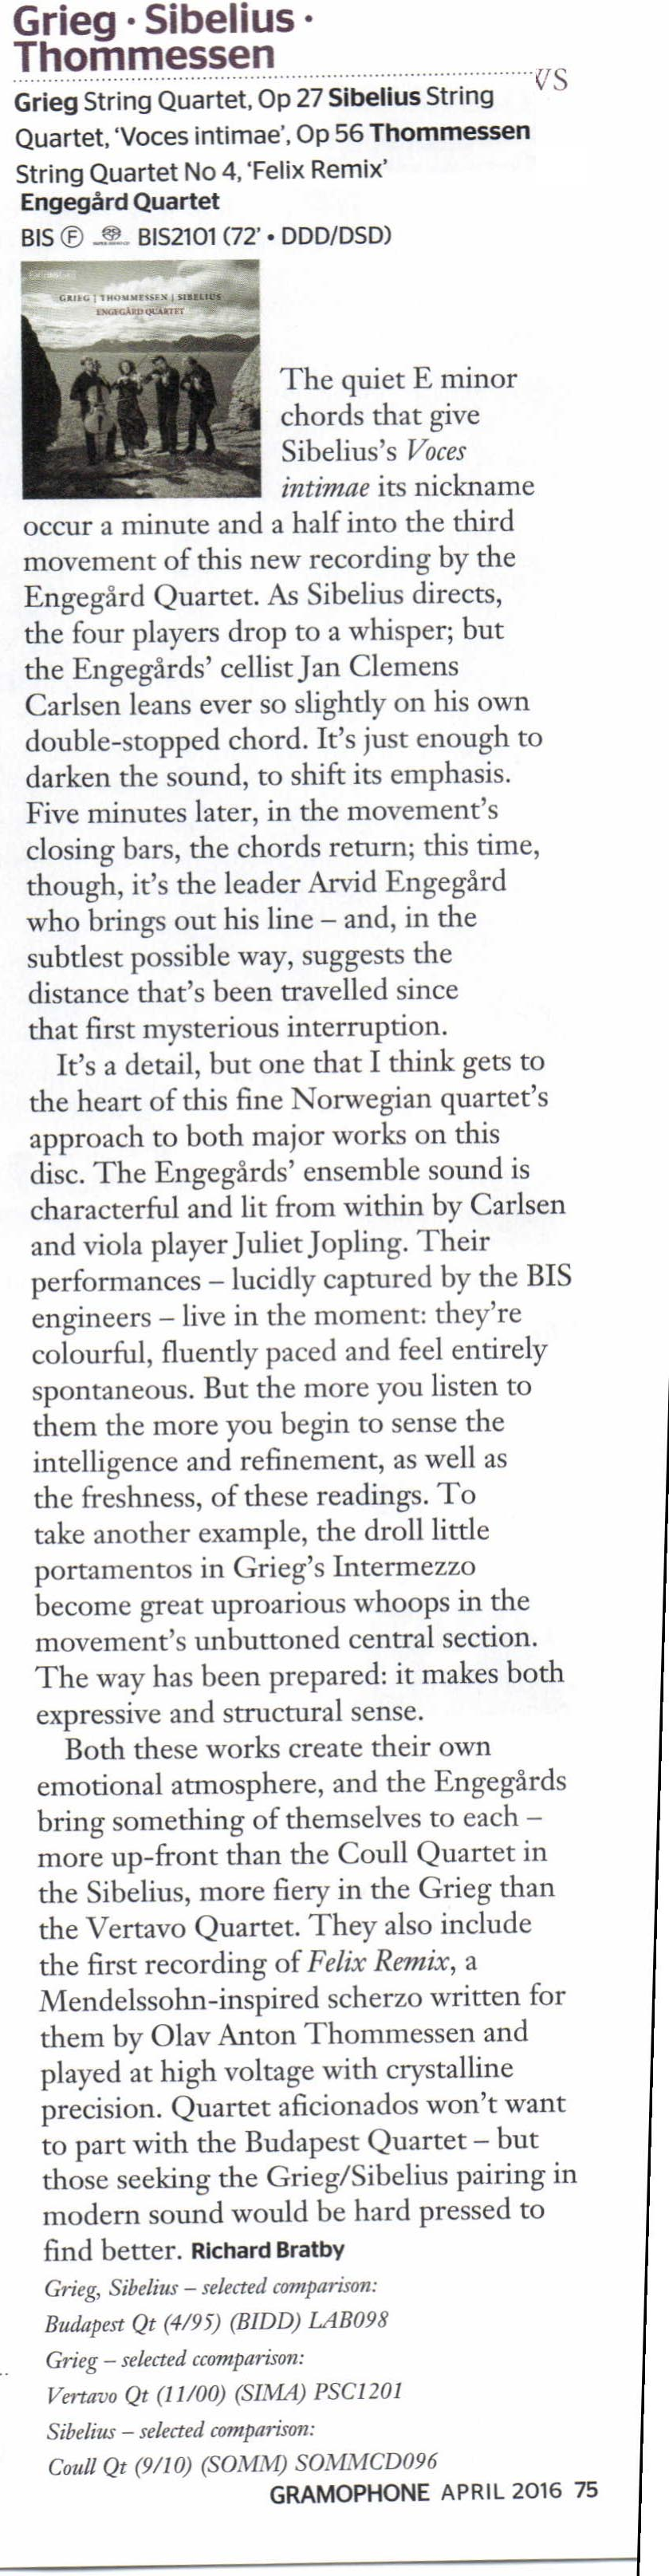 Great reviews for the Engegård Quartet in Gramophone, BBC